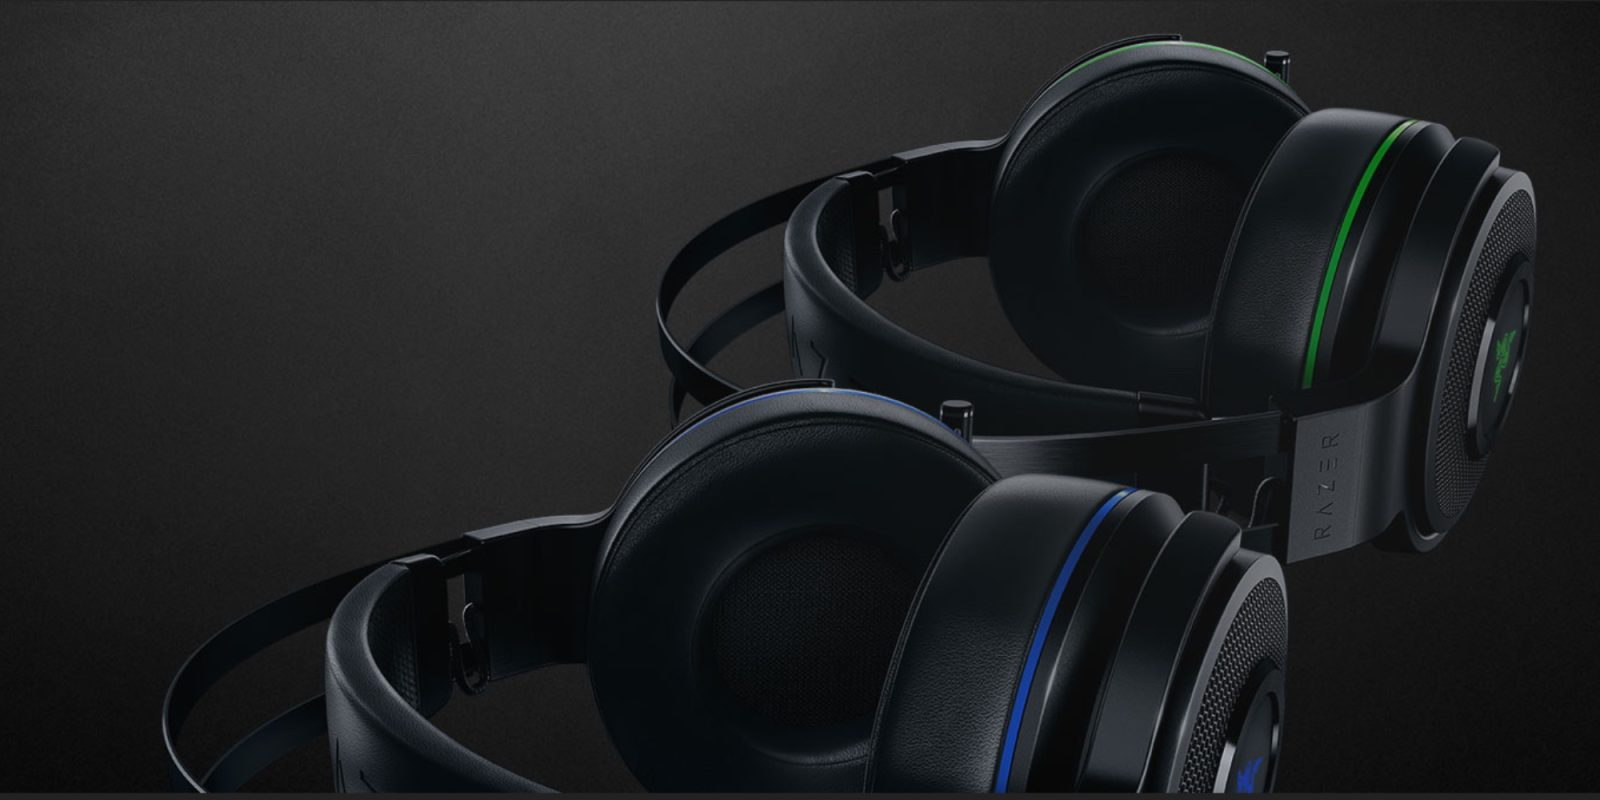 Score Razer's Thresher PS4 or Xbox One Ultimate Gaming Headset from $120